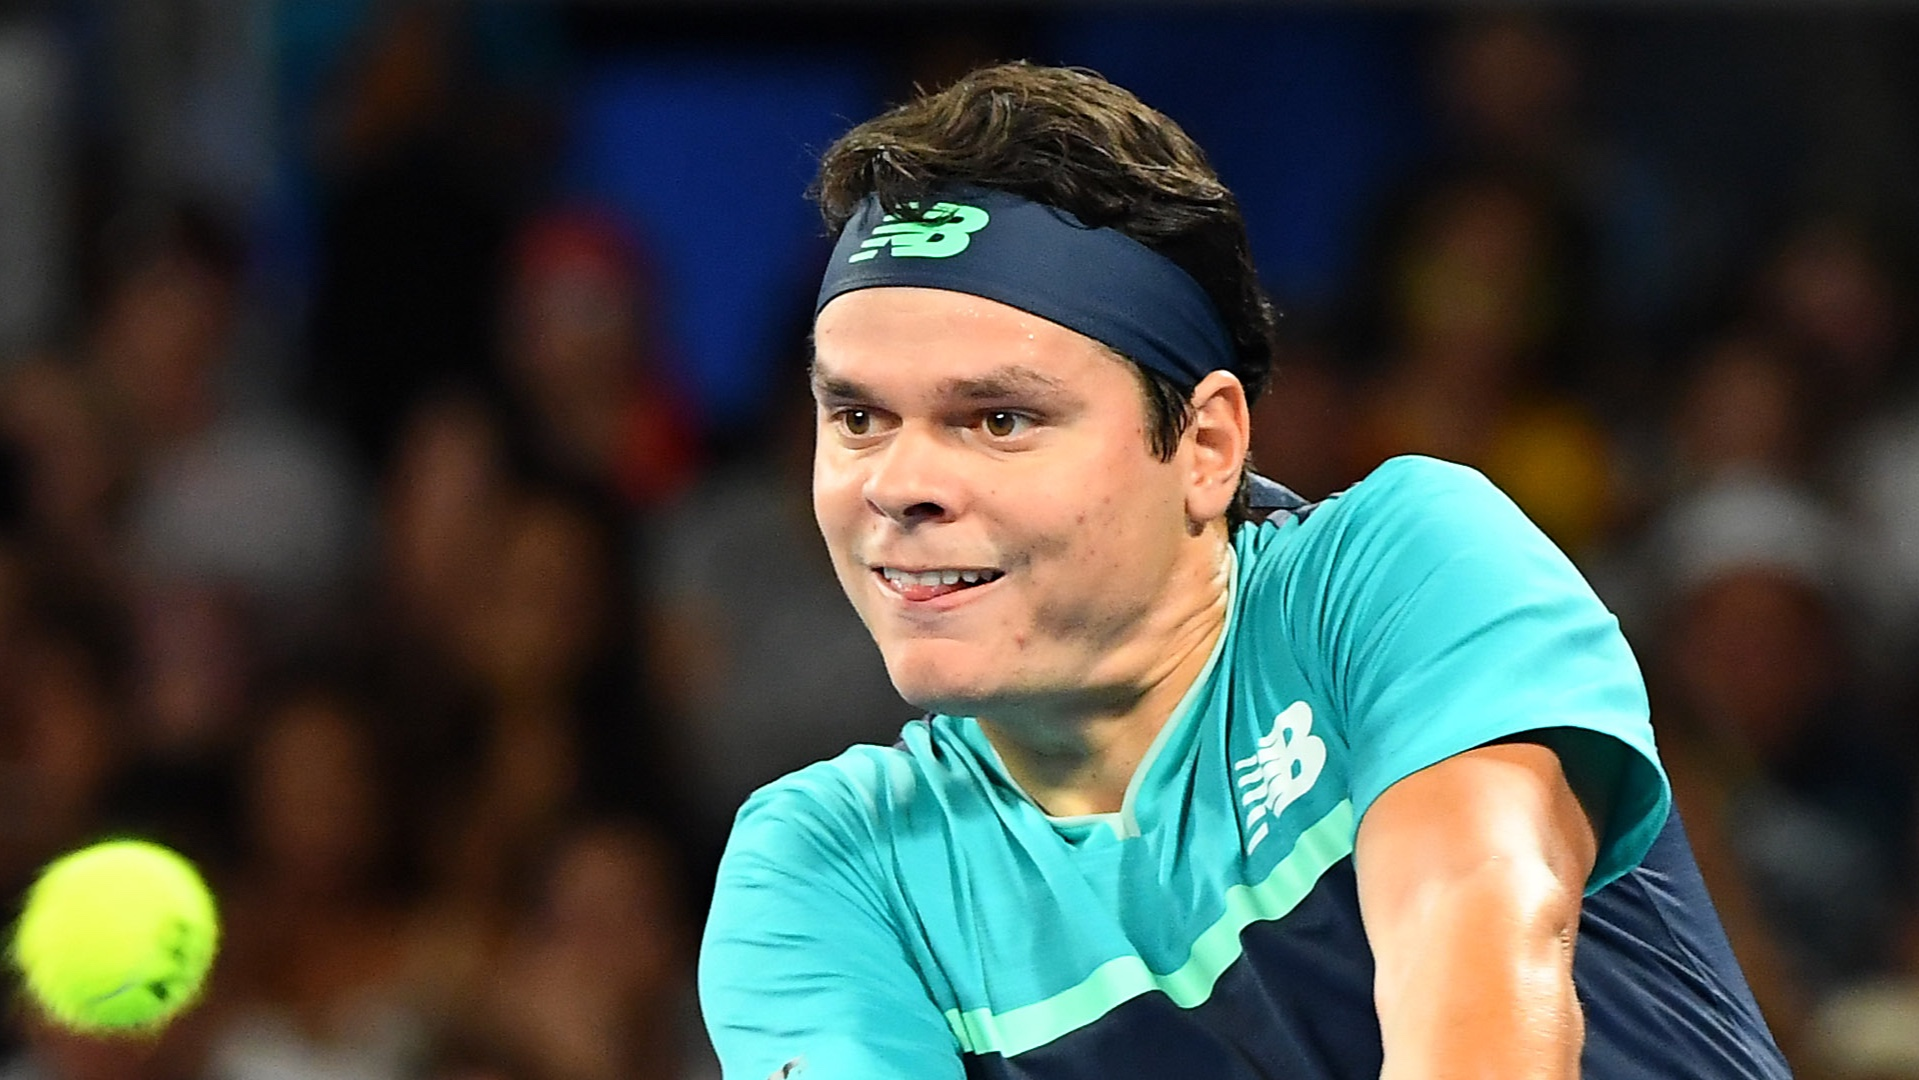 Australian Open 2019: Milos Raonic cruises past Nick Kyrgios in first round